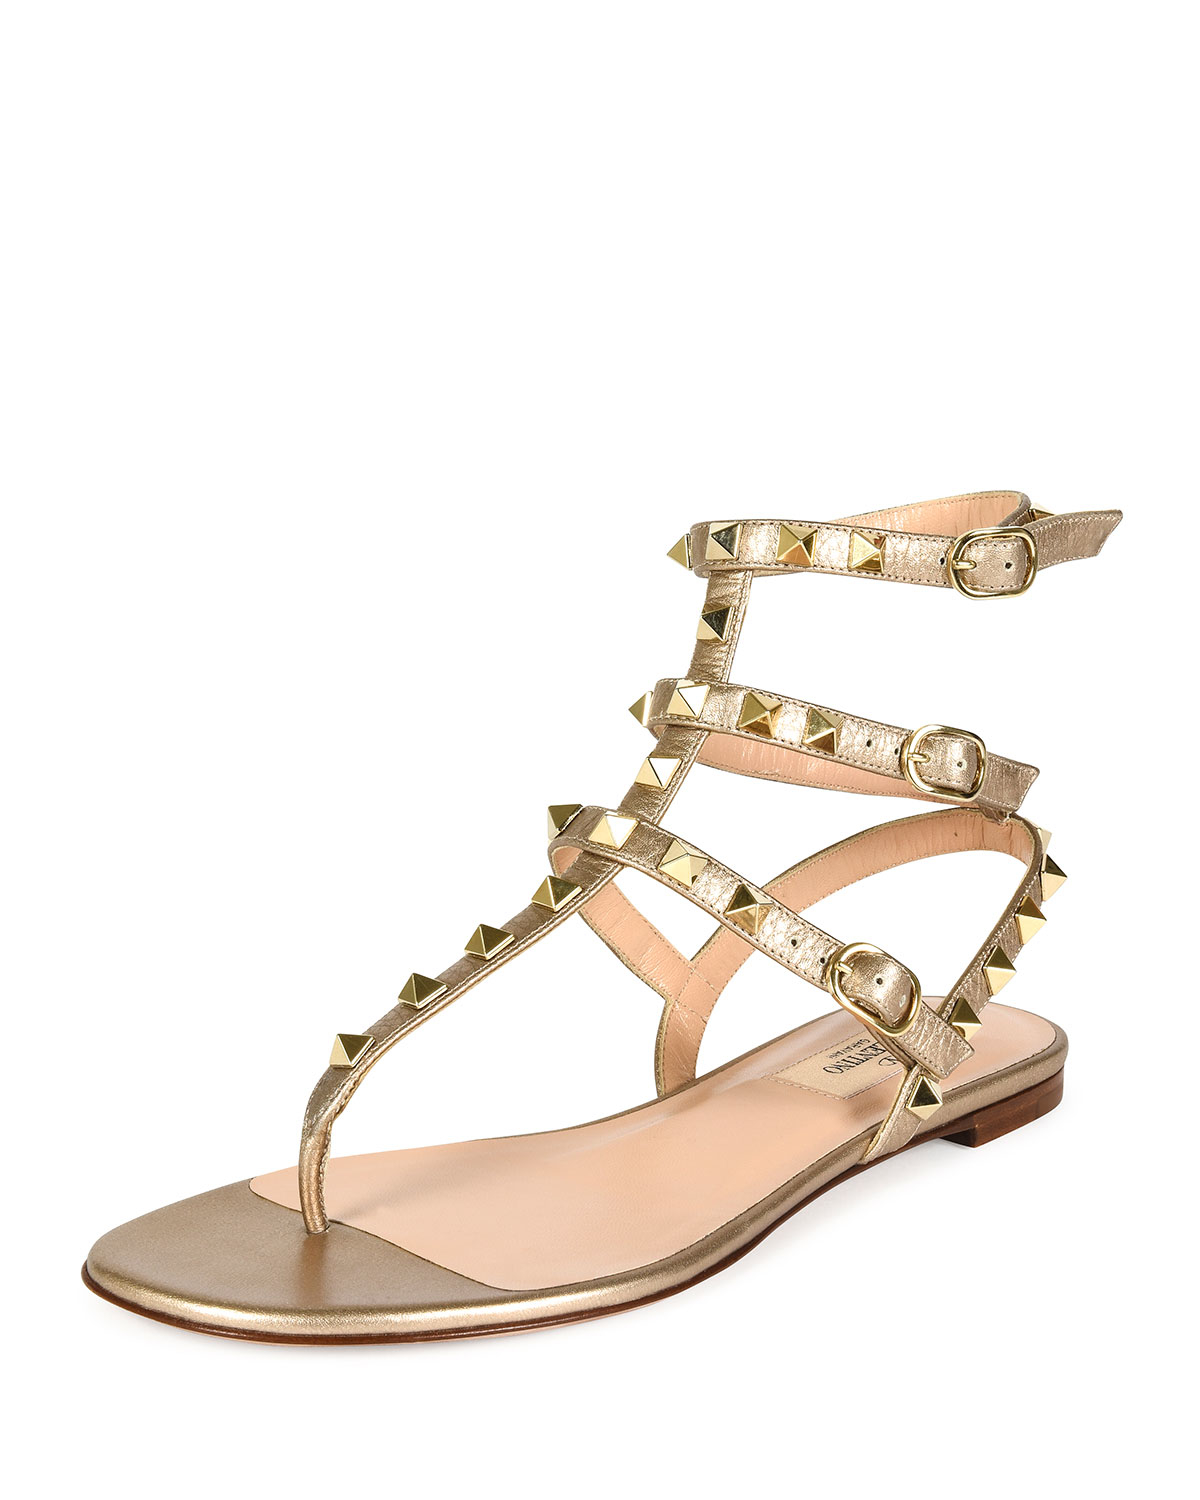 90d88bc1a7190 Gallery. Previously sold at  Bergdorf Goodman · Women s Gladiator Sandals  Women s Valentino Gladiator Sandals Women s Valentino Rockstud ...